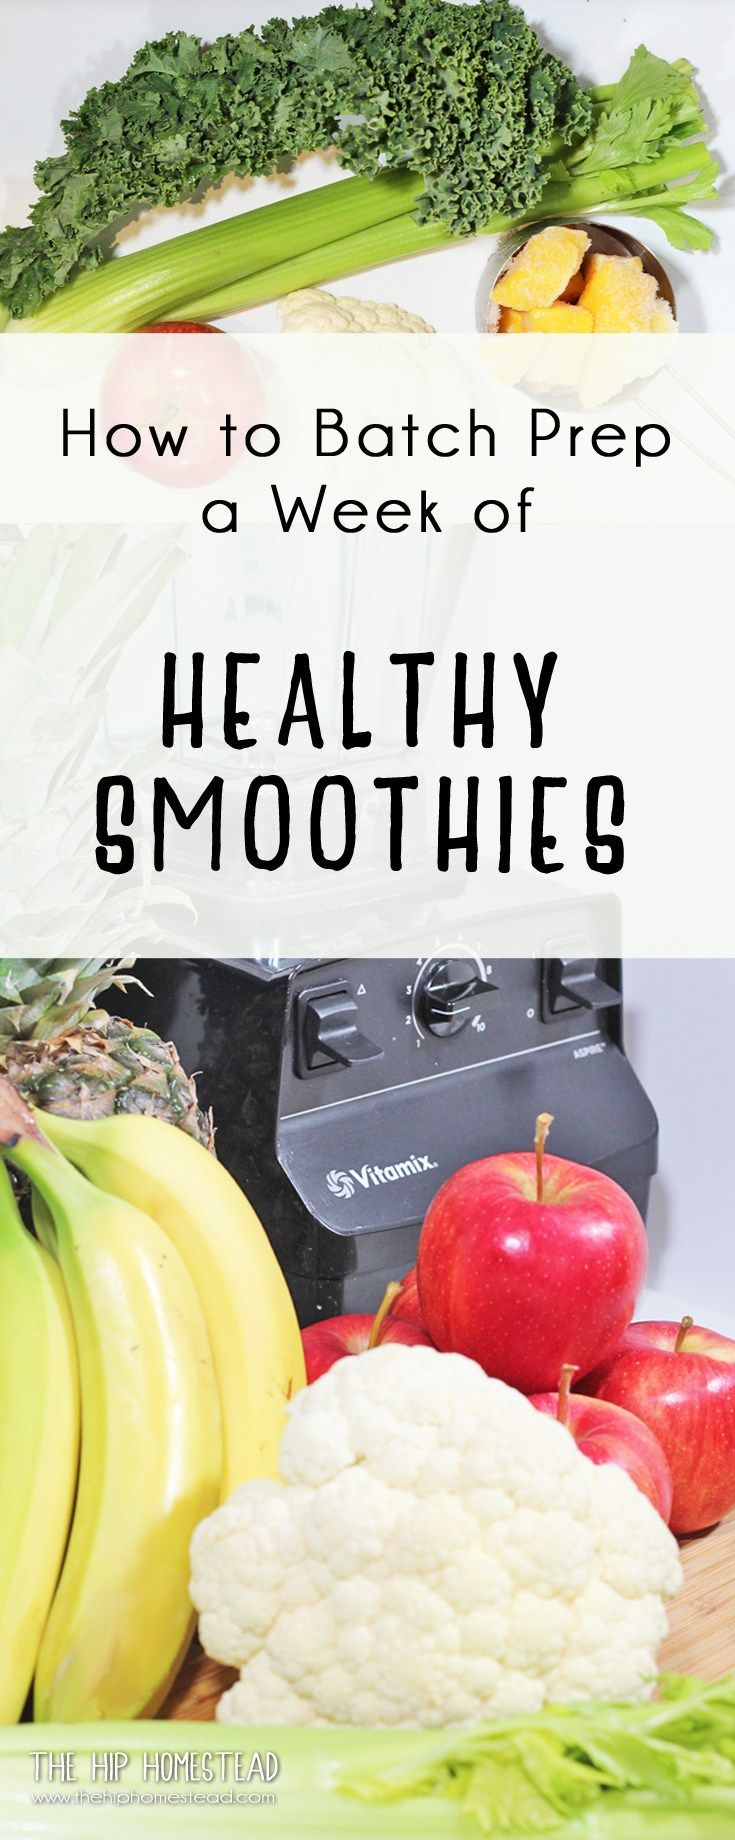 How to batch prep a week of healthy smoothies - The Hip Homestead